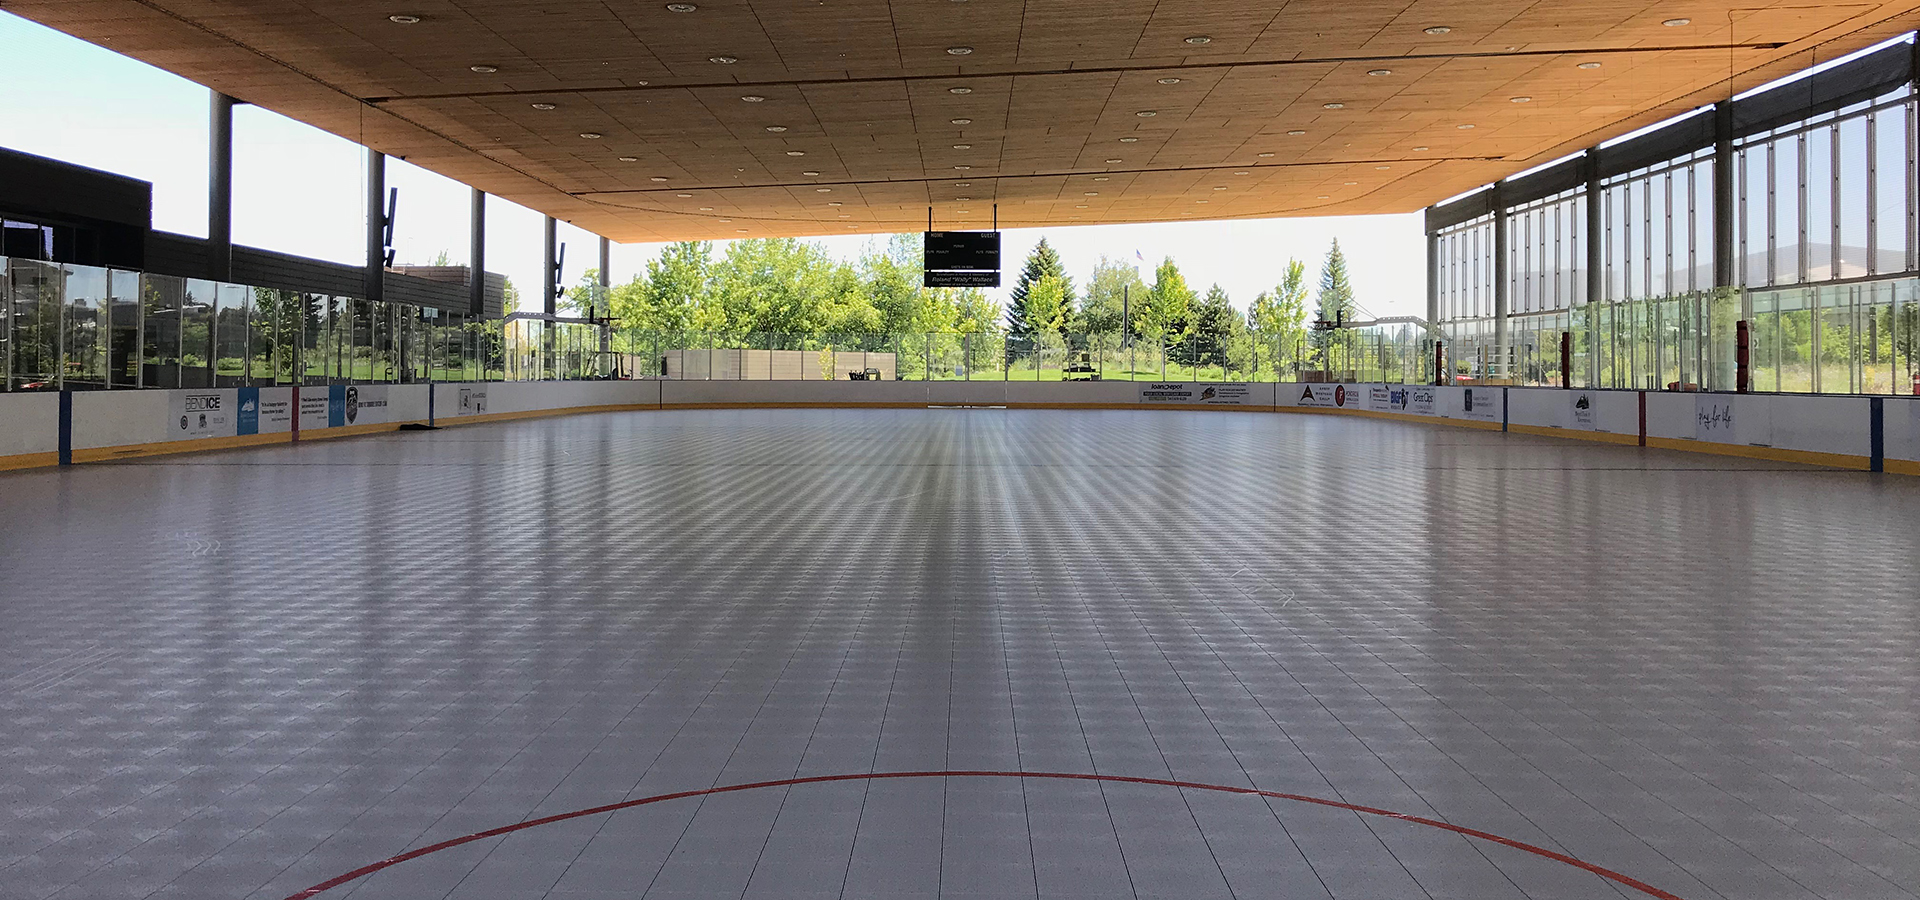 Roller skating surface at The Pavilion